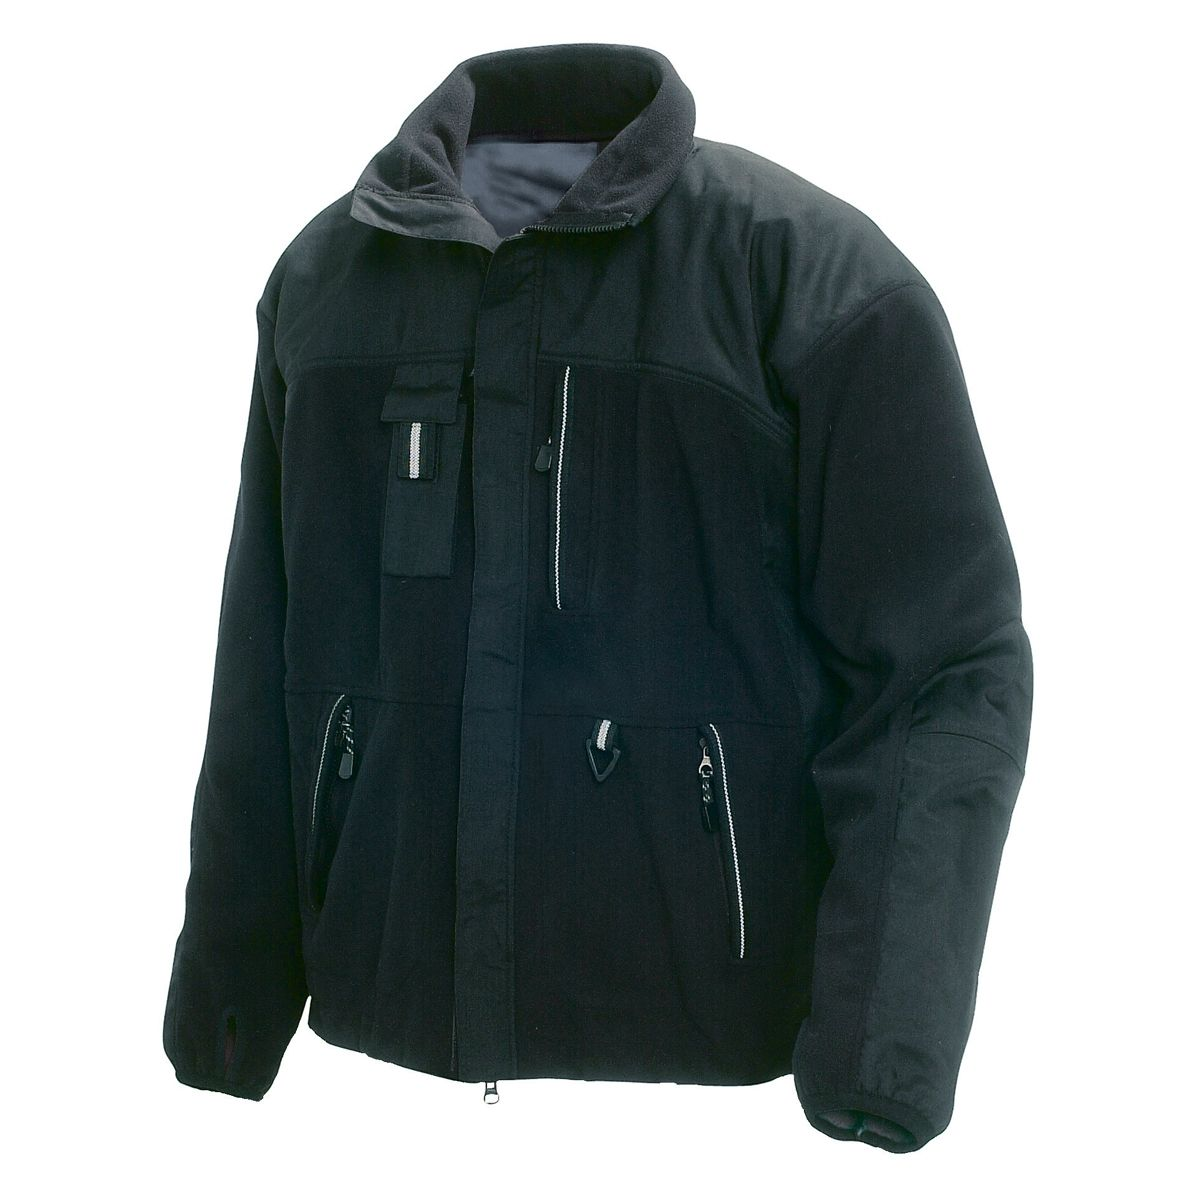 ... Jacket - Black - Think your work is too tough for fleece  Then you  haven t tried the Two Fisted. It has strategic Cordura reinforcements in  high-wear ... da1e557d34